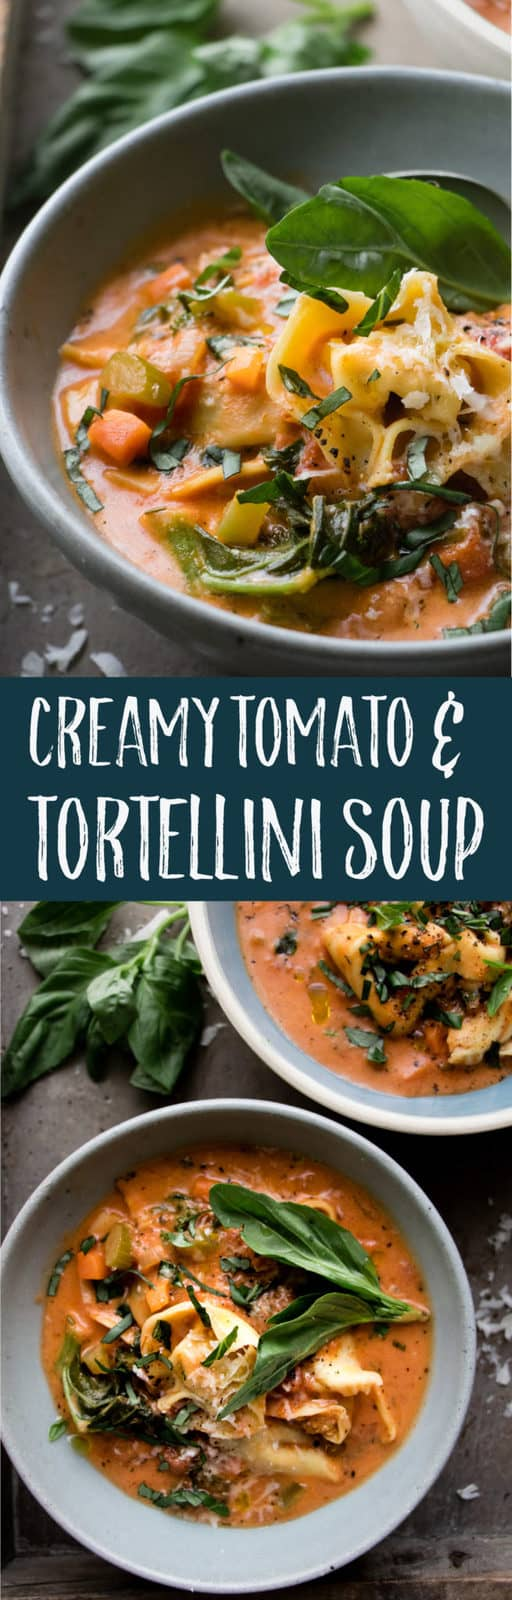 This extra veggie creamy tomato and tortellini soup is a healthy and hearty dinner or lunch. Italian herbs, iron rich kale and tomatoes, with cheese tortellini. Simple soup and comes together in 20 minutes. #soup #souping #Pasta #Dinner #Healthy